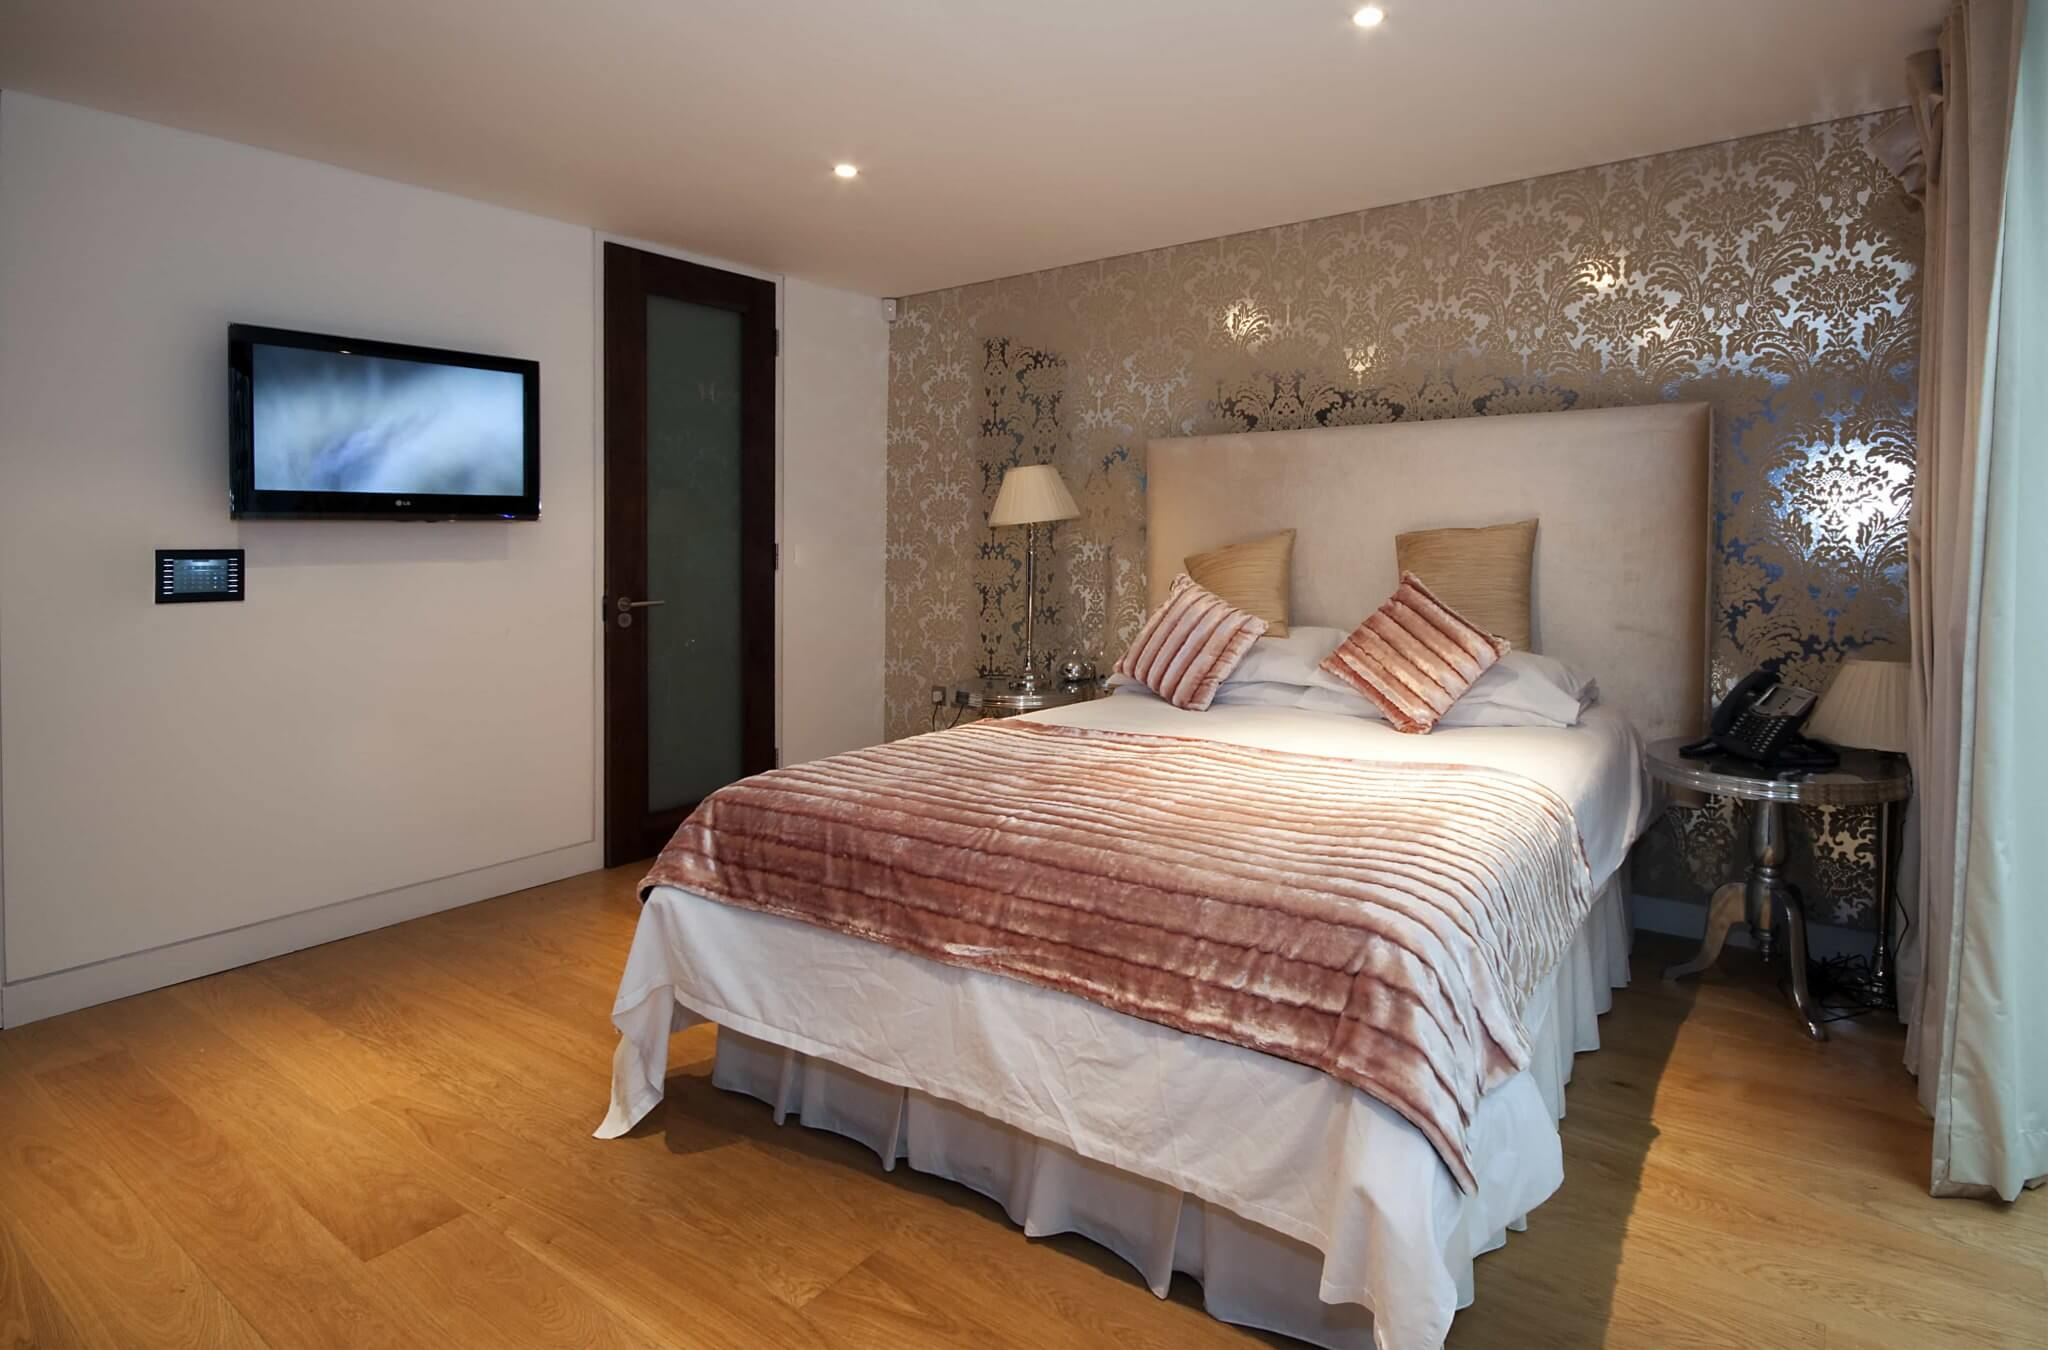 Bedroom AV System with Crestron Touchpanel